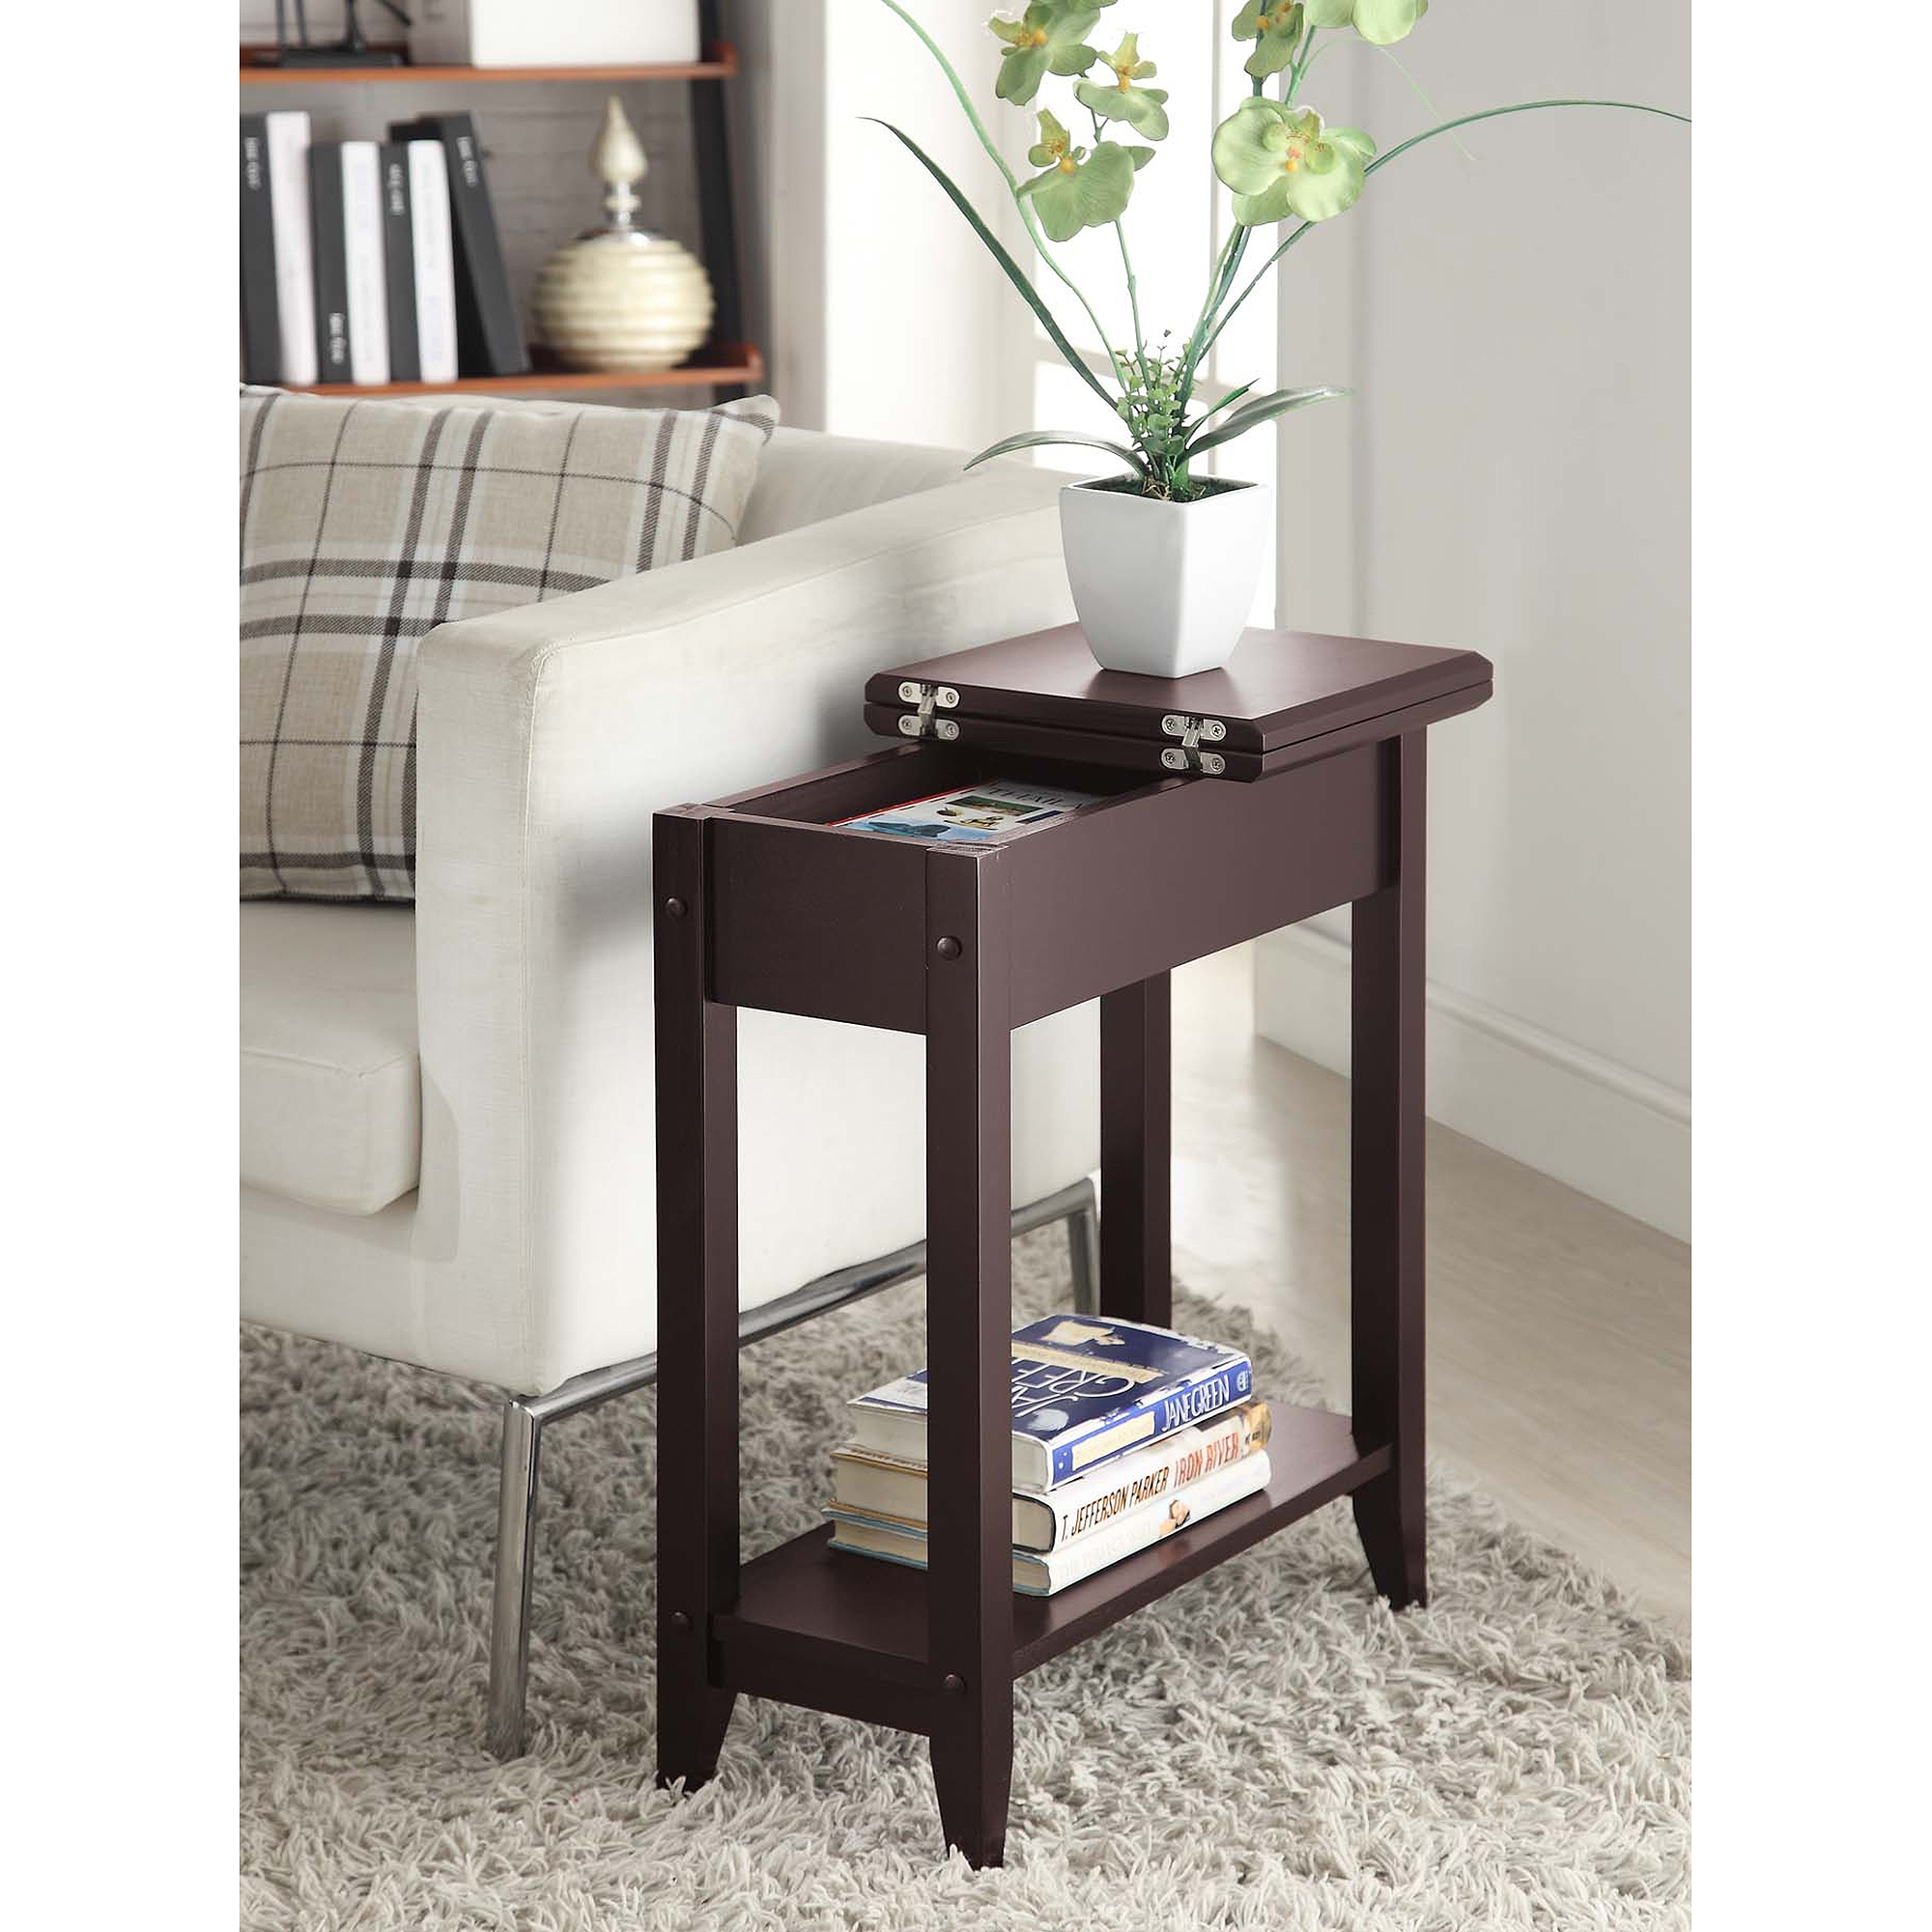 solid black coffee table the fantastic awesome skinny end american heritage flip top tall side multiple colors with drawer small bedside dresser graco high chair glass occasional